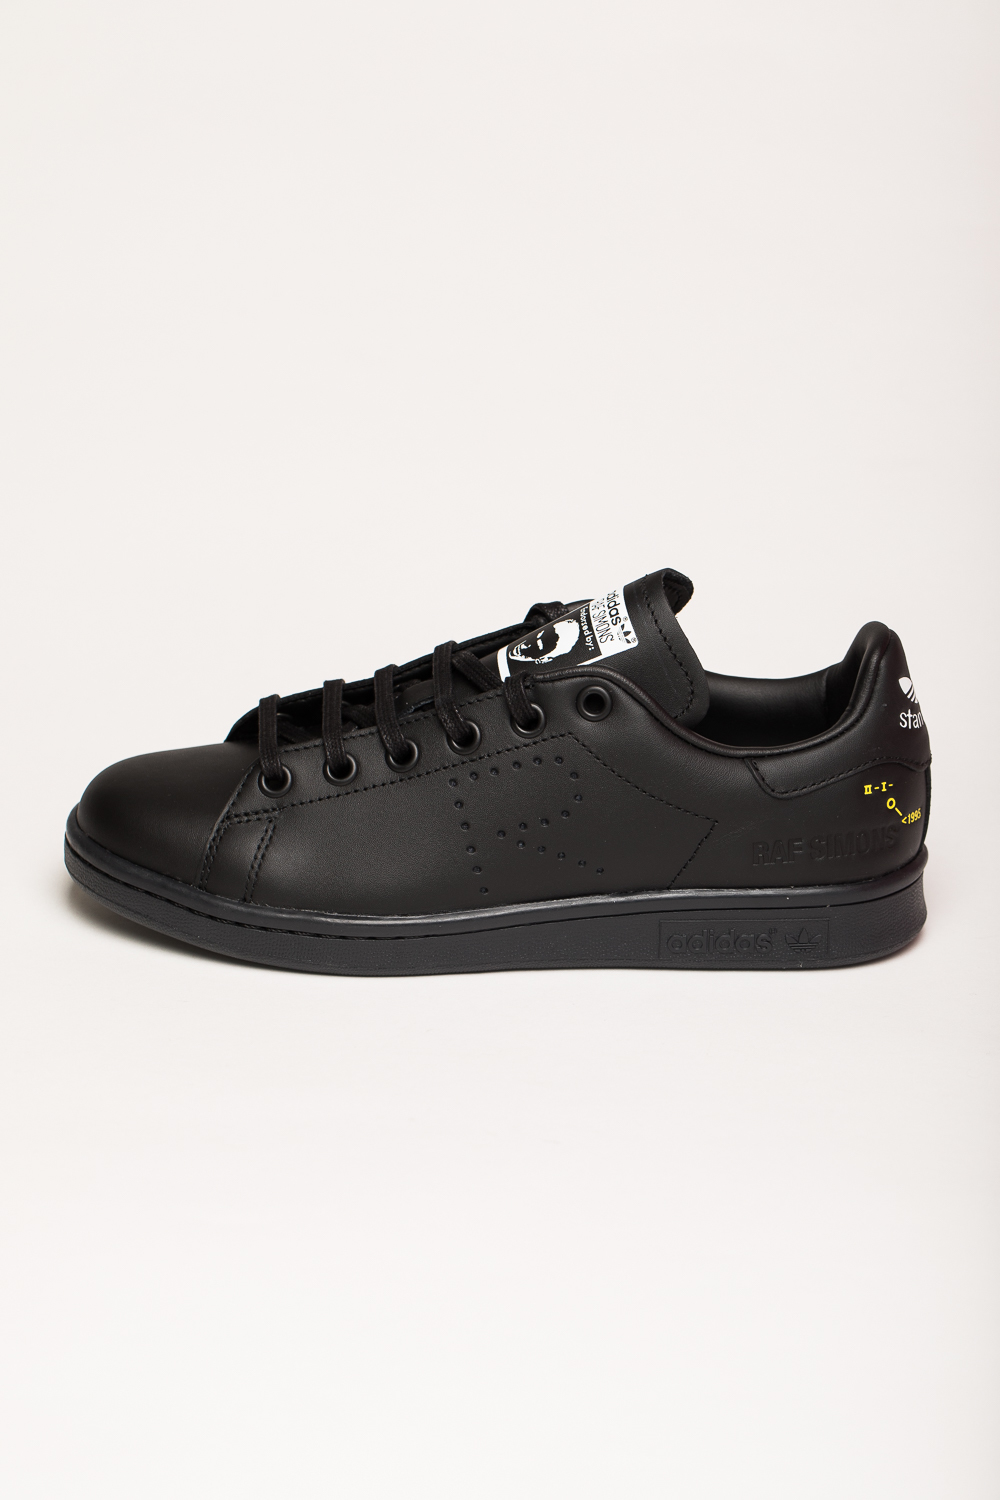 new product 814f2 1f3e6 Adidas x Raf Simons Sneakers RS Stan Smith